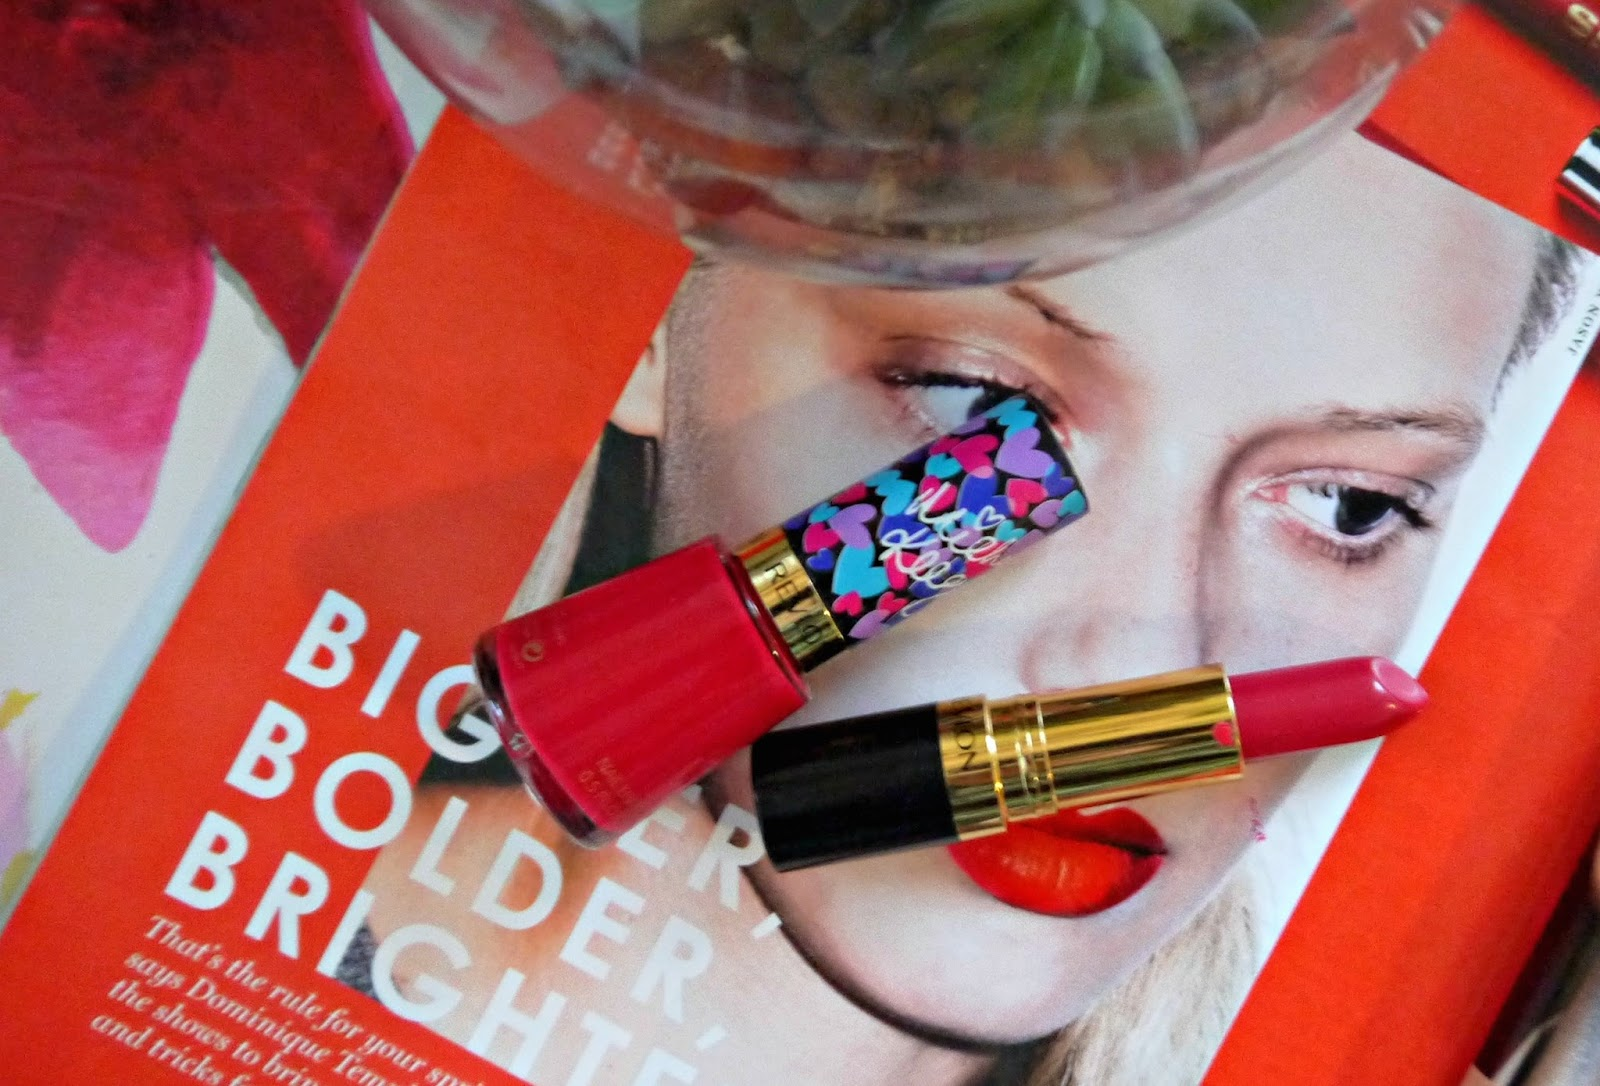 You may or may not have noticed that bright nails and lips are having a moment within my daily beauty routine. Whether it's a cool coral, a racy red or a ...